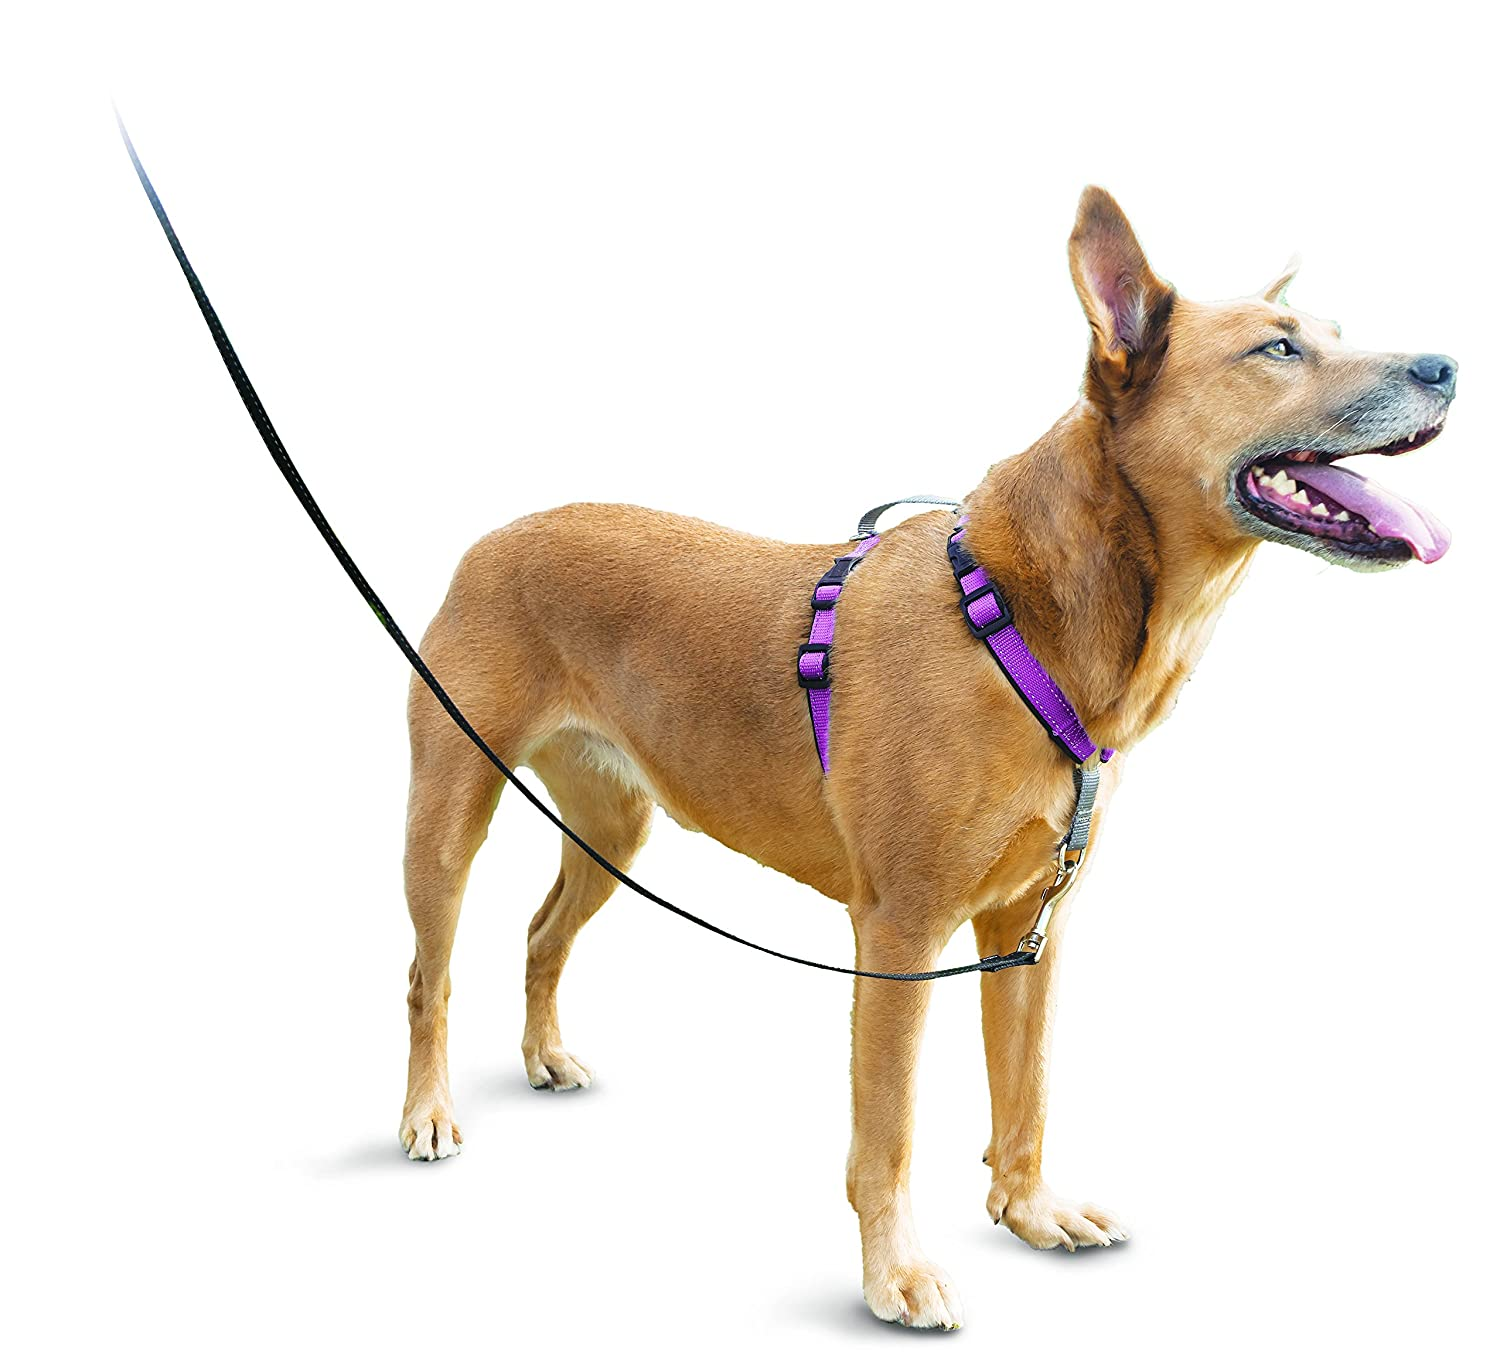 PetSafe 3in1 Harness, from The Makers of The Easy Walk Harness, Fully Adjustable No-Pull Dog Harness Toys & Behavior 3IN1-M-TEAL